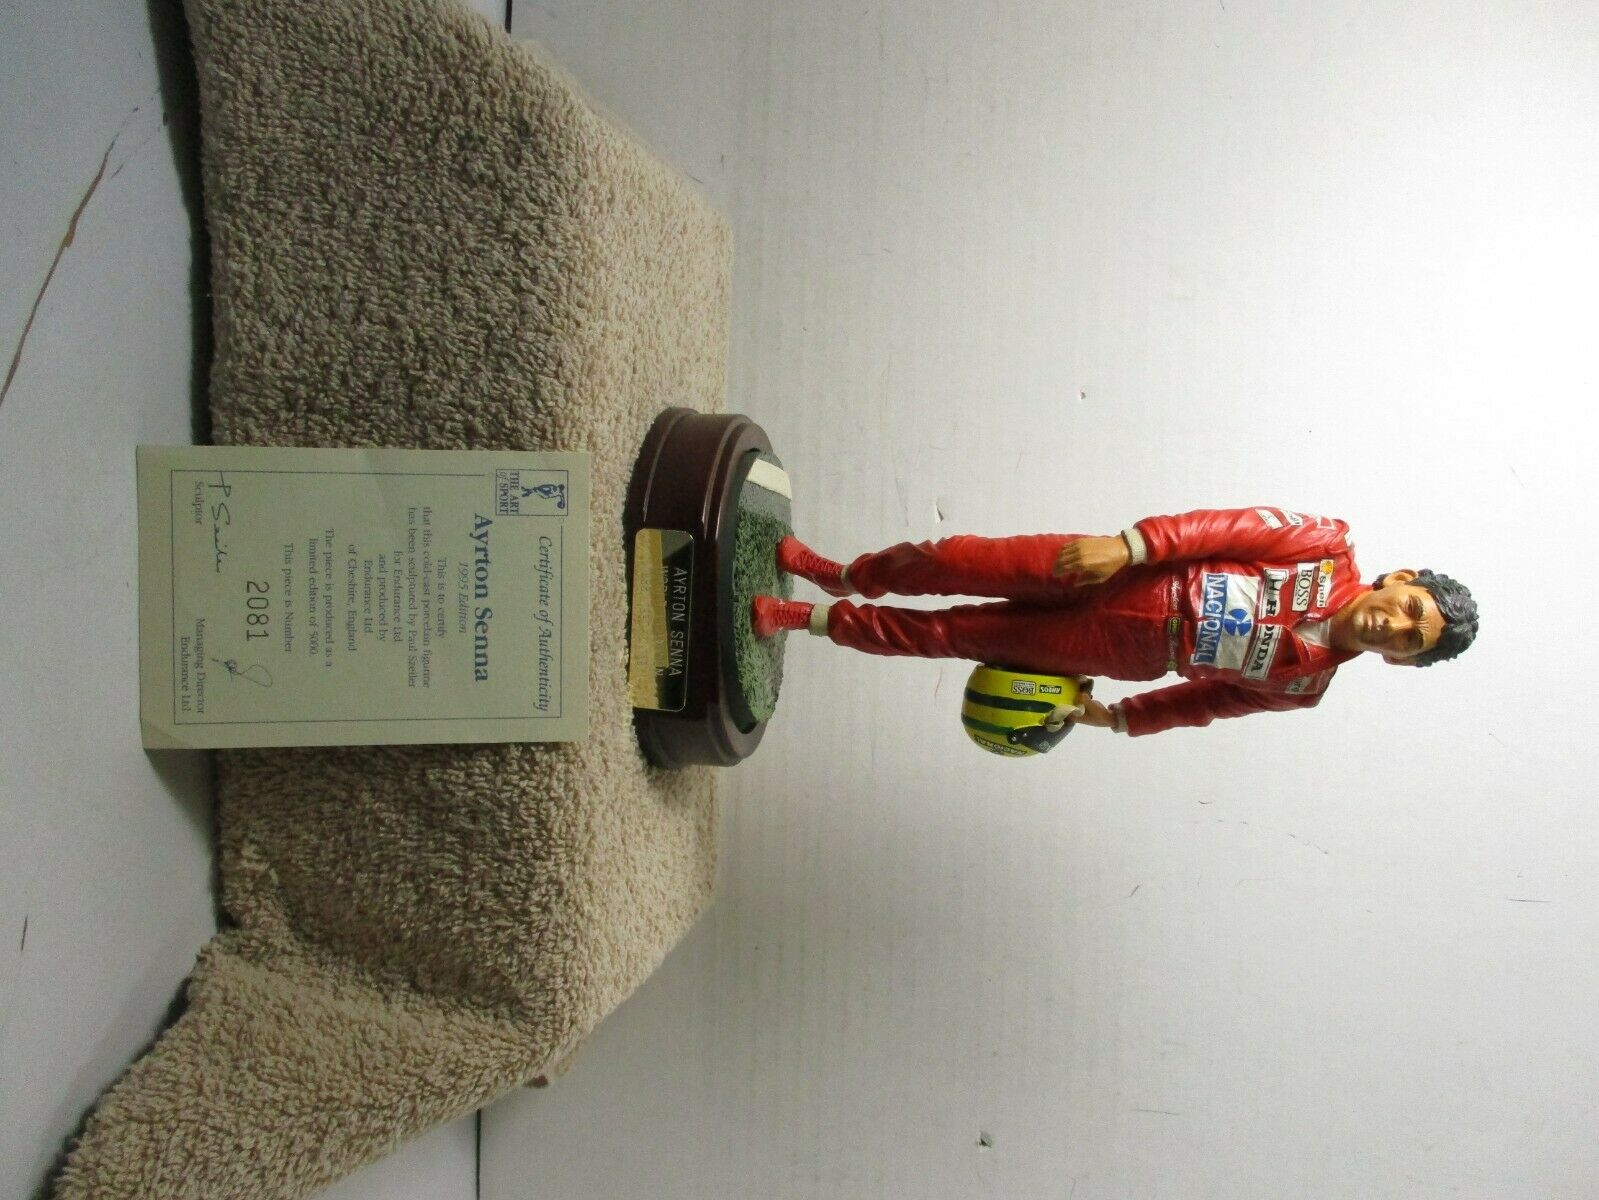 1 18 SCALE FIGURINE OF AYRTON SENNA 1995 EDITION COLD CAST PORCELAIN